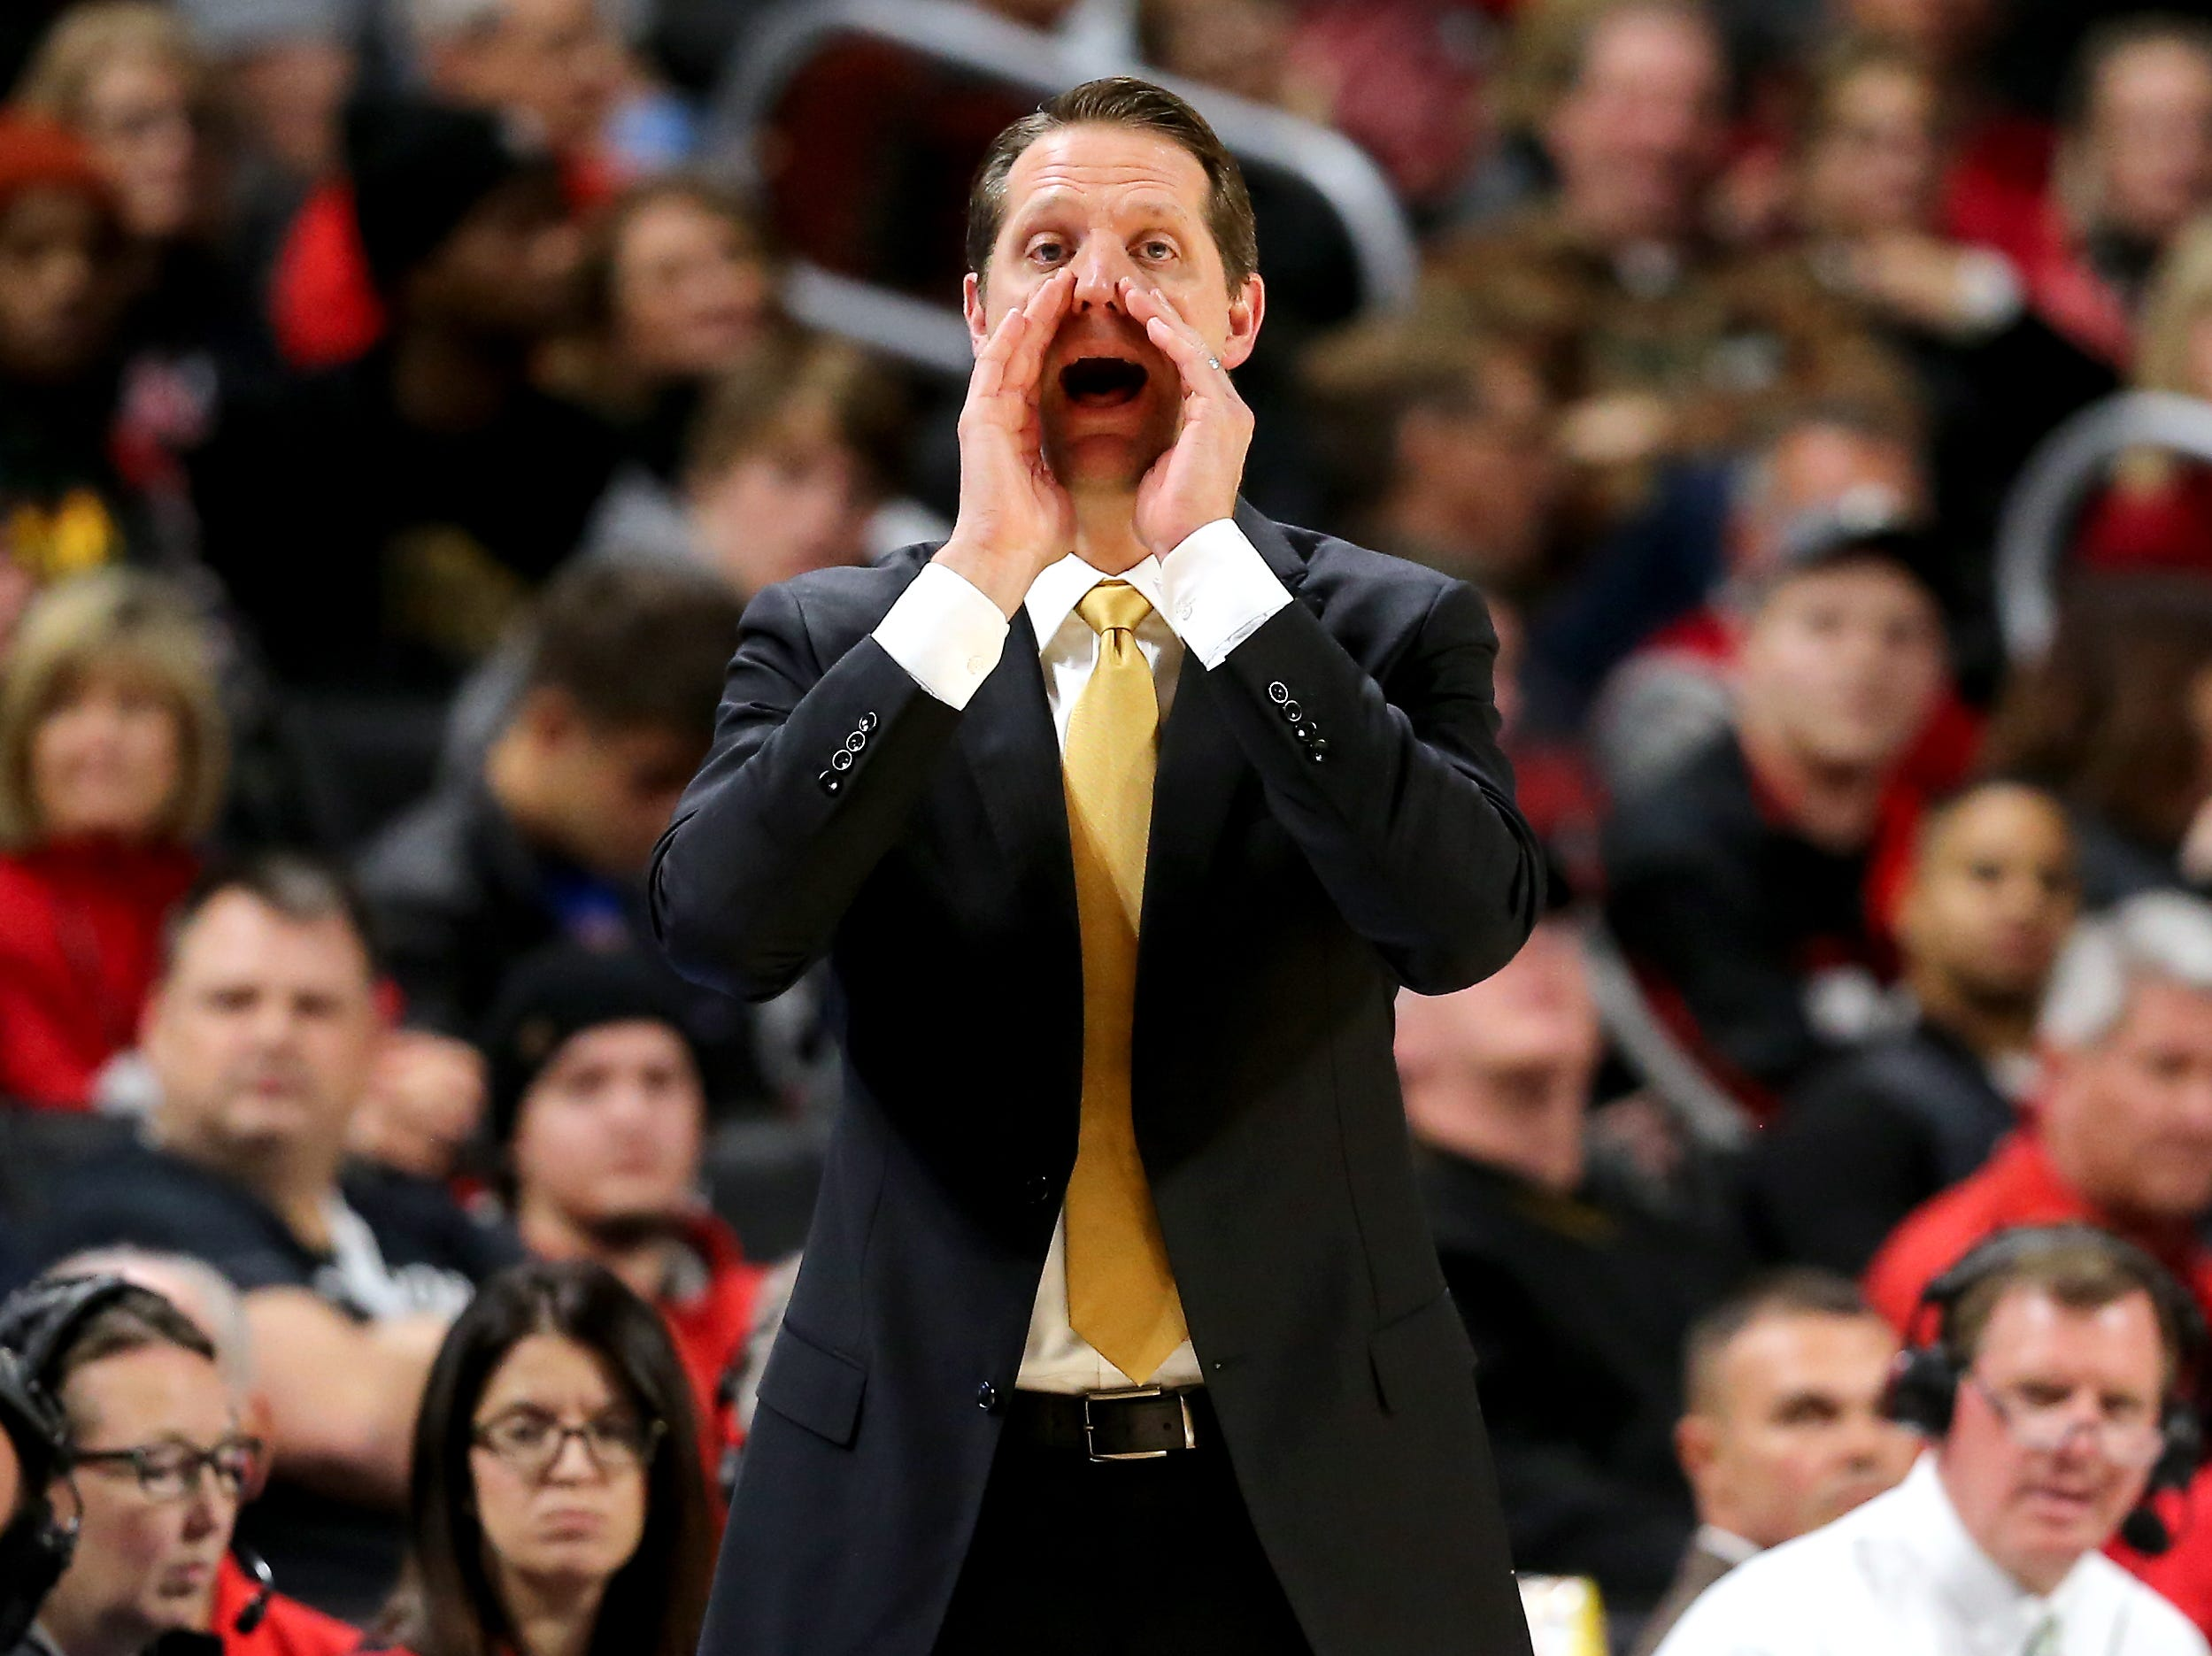 Northern Kentucky Norse head coach John Brannen instructs the team in the first half of an NCAA college basketball game against the Cincinnati Bearcats, Tuesday, Dec. 4, 2018, at Fifth Third Arena in Cincinnati.